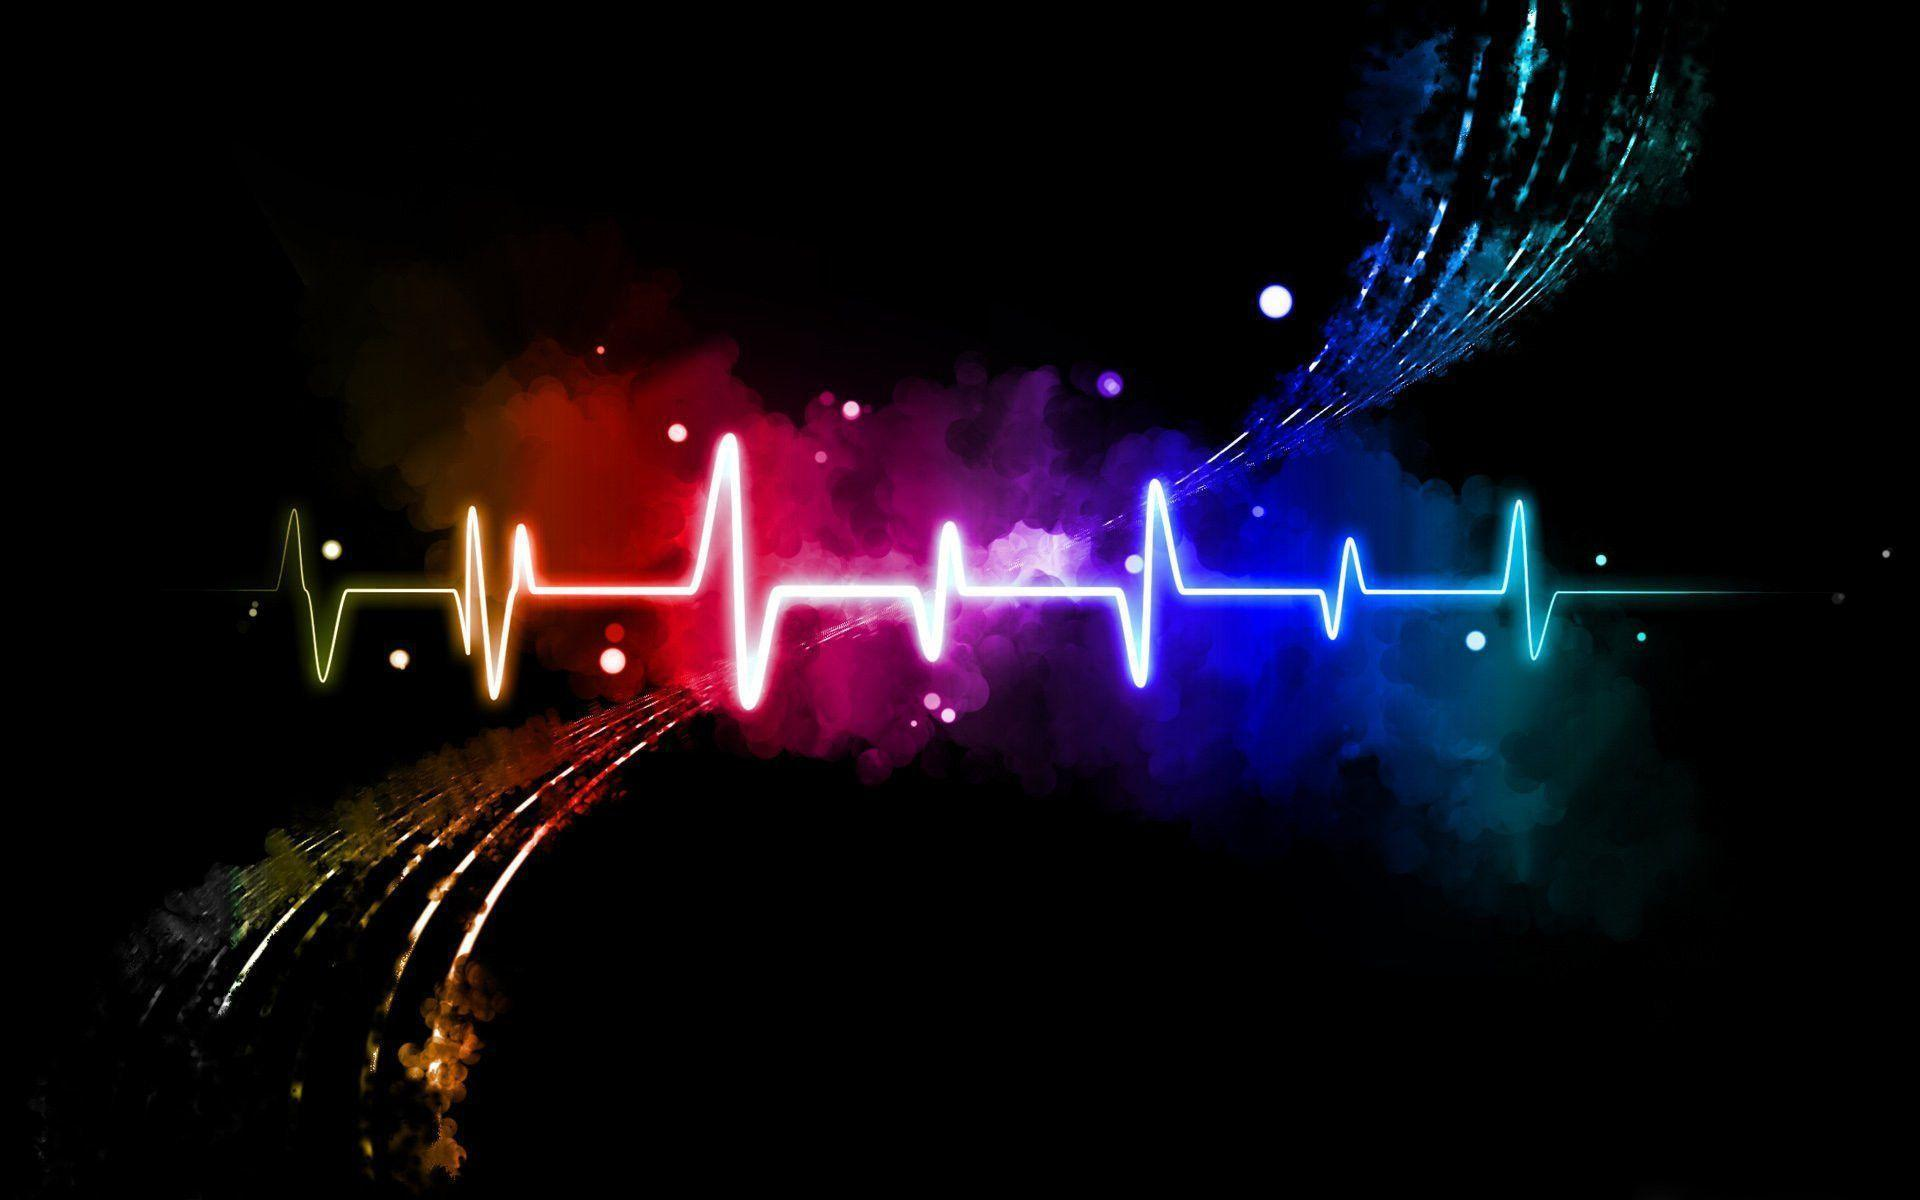 Heartbeat Wallpapers